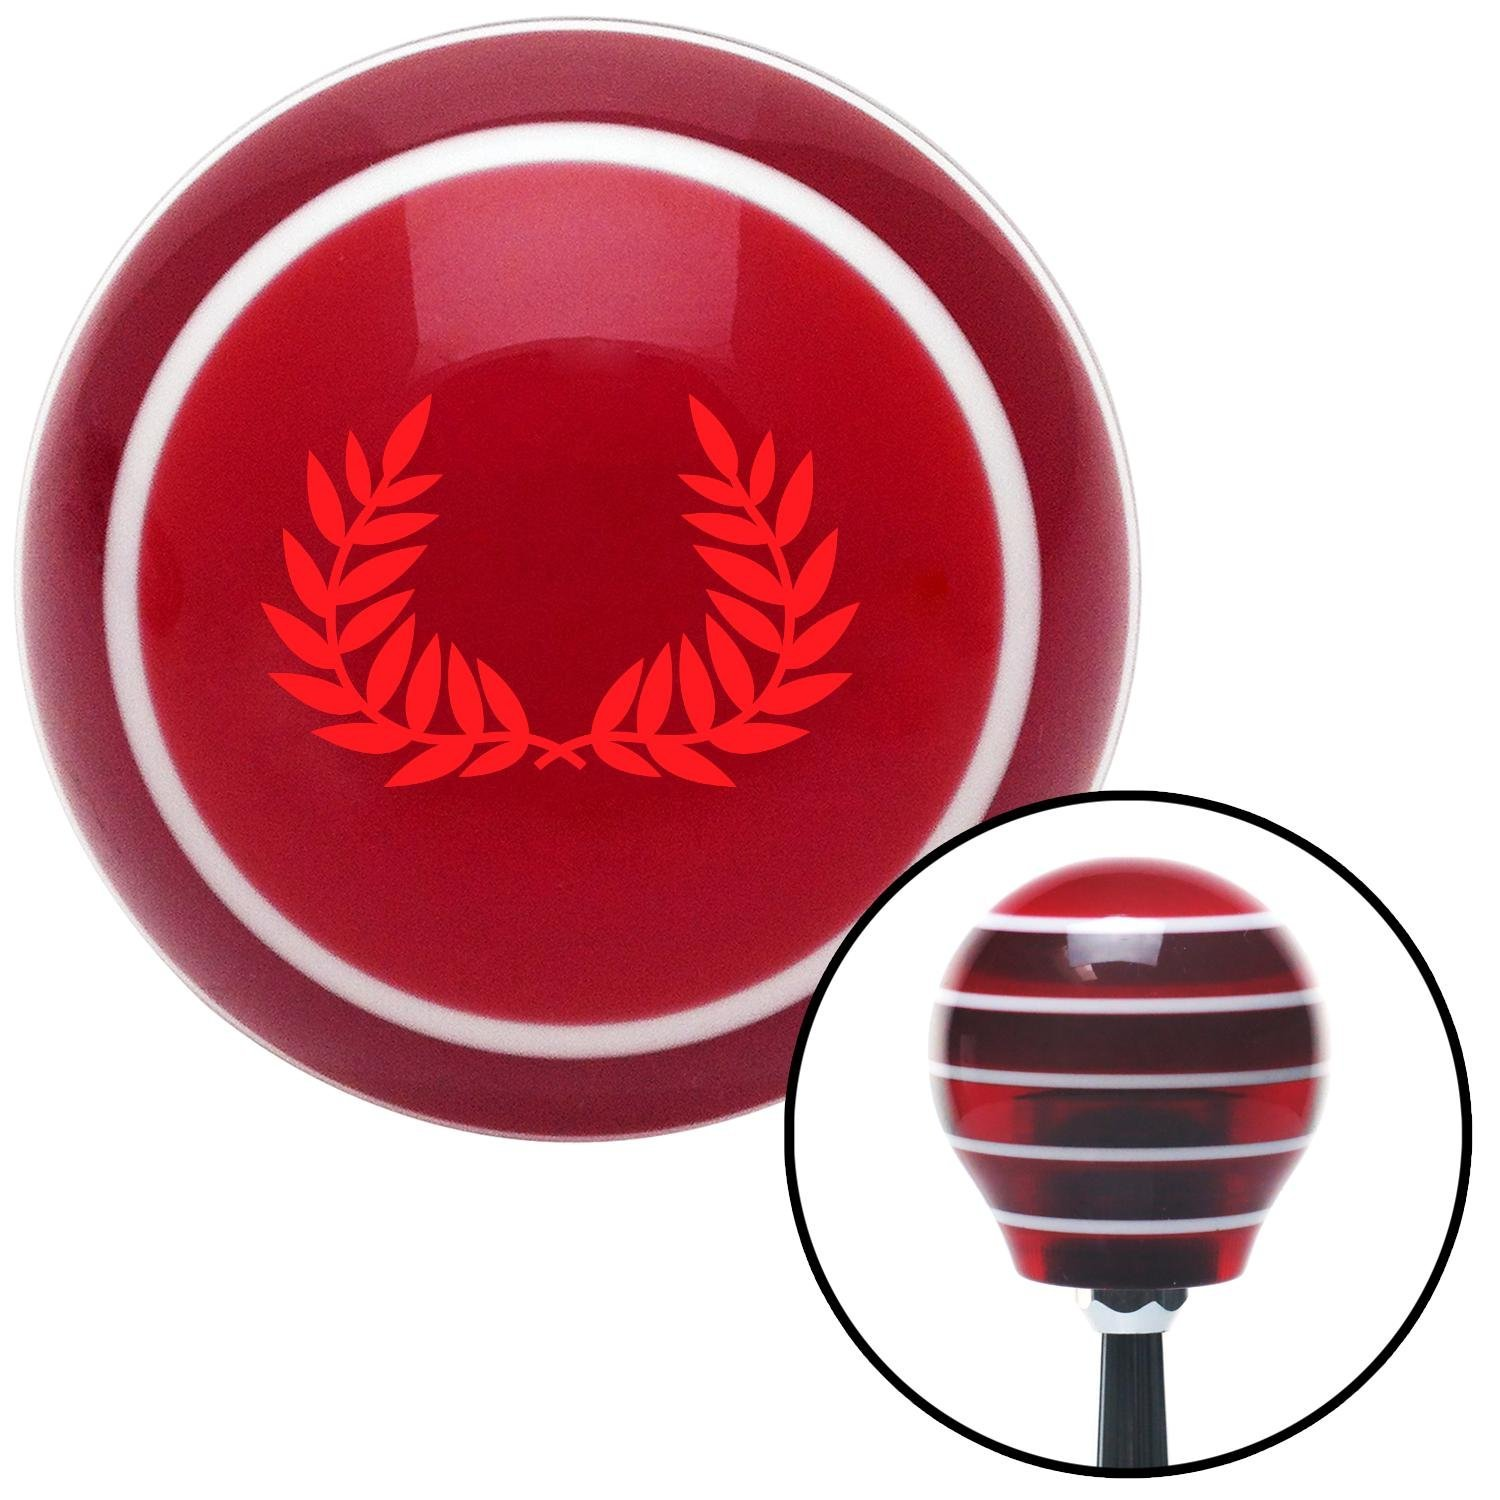 American Shifter 113623 Red Stripe Shift Knob with M16 x 1.5 Insert Red Hawaiian Leaf #2